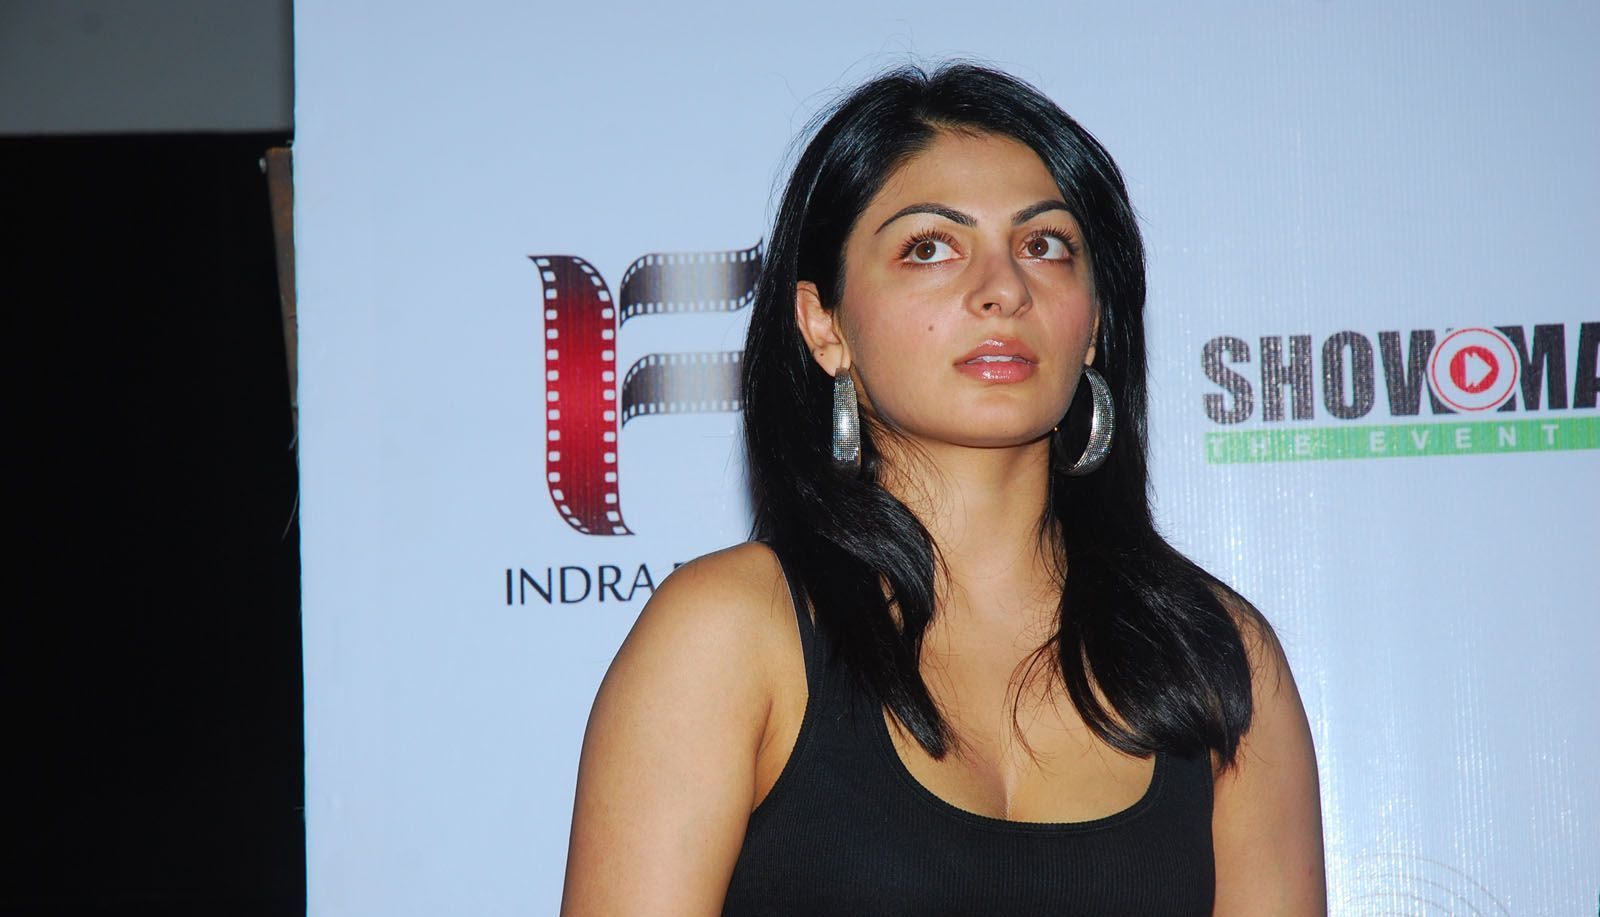 High Quality Bollywood Celebrity Pictures: Neeru Bajwa